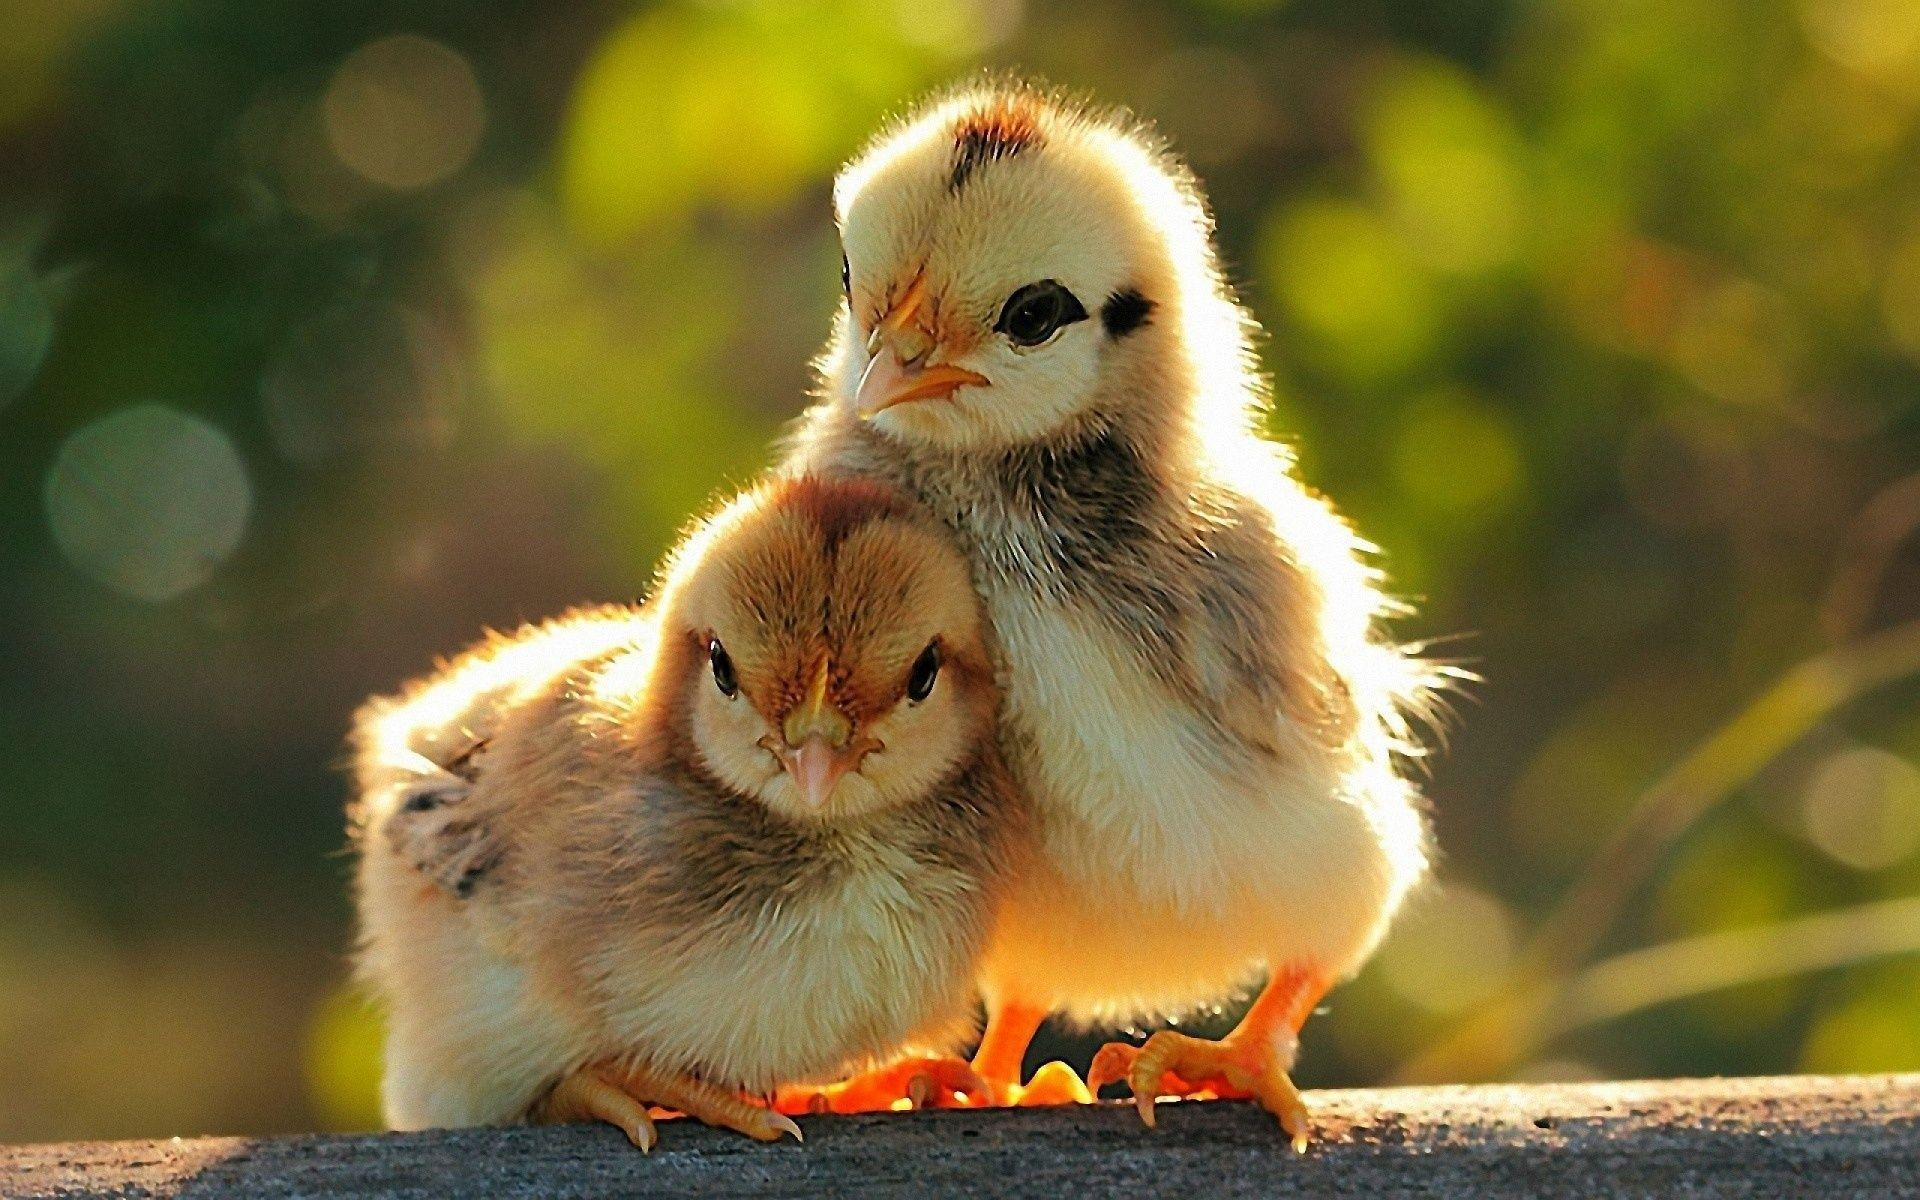 Chickens Wallpapers Wallpaper Cave